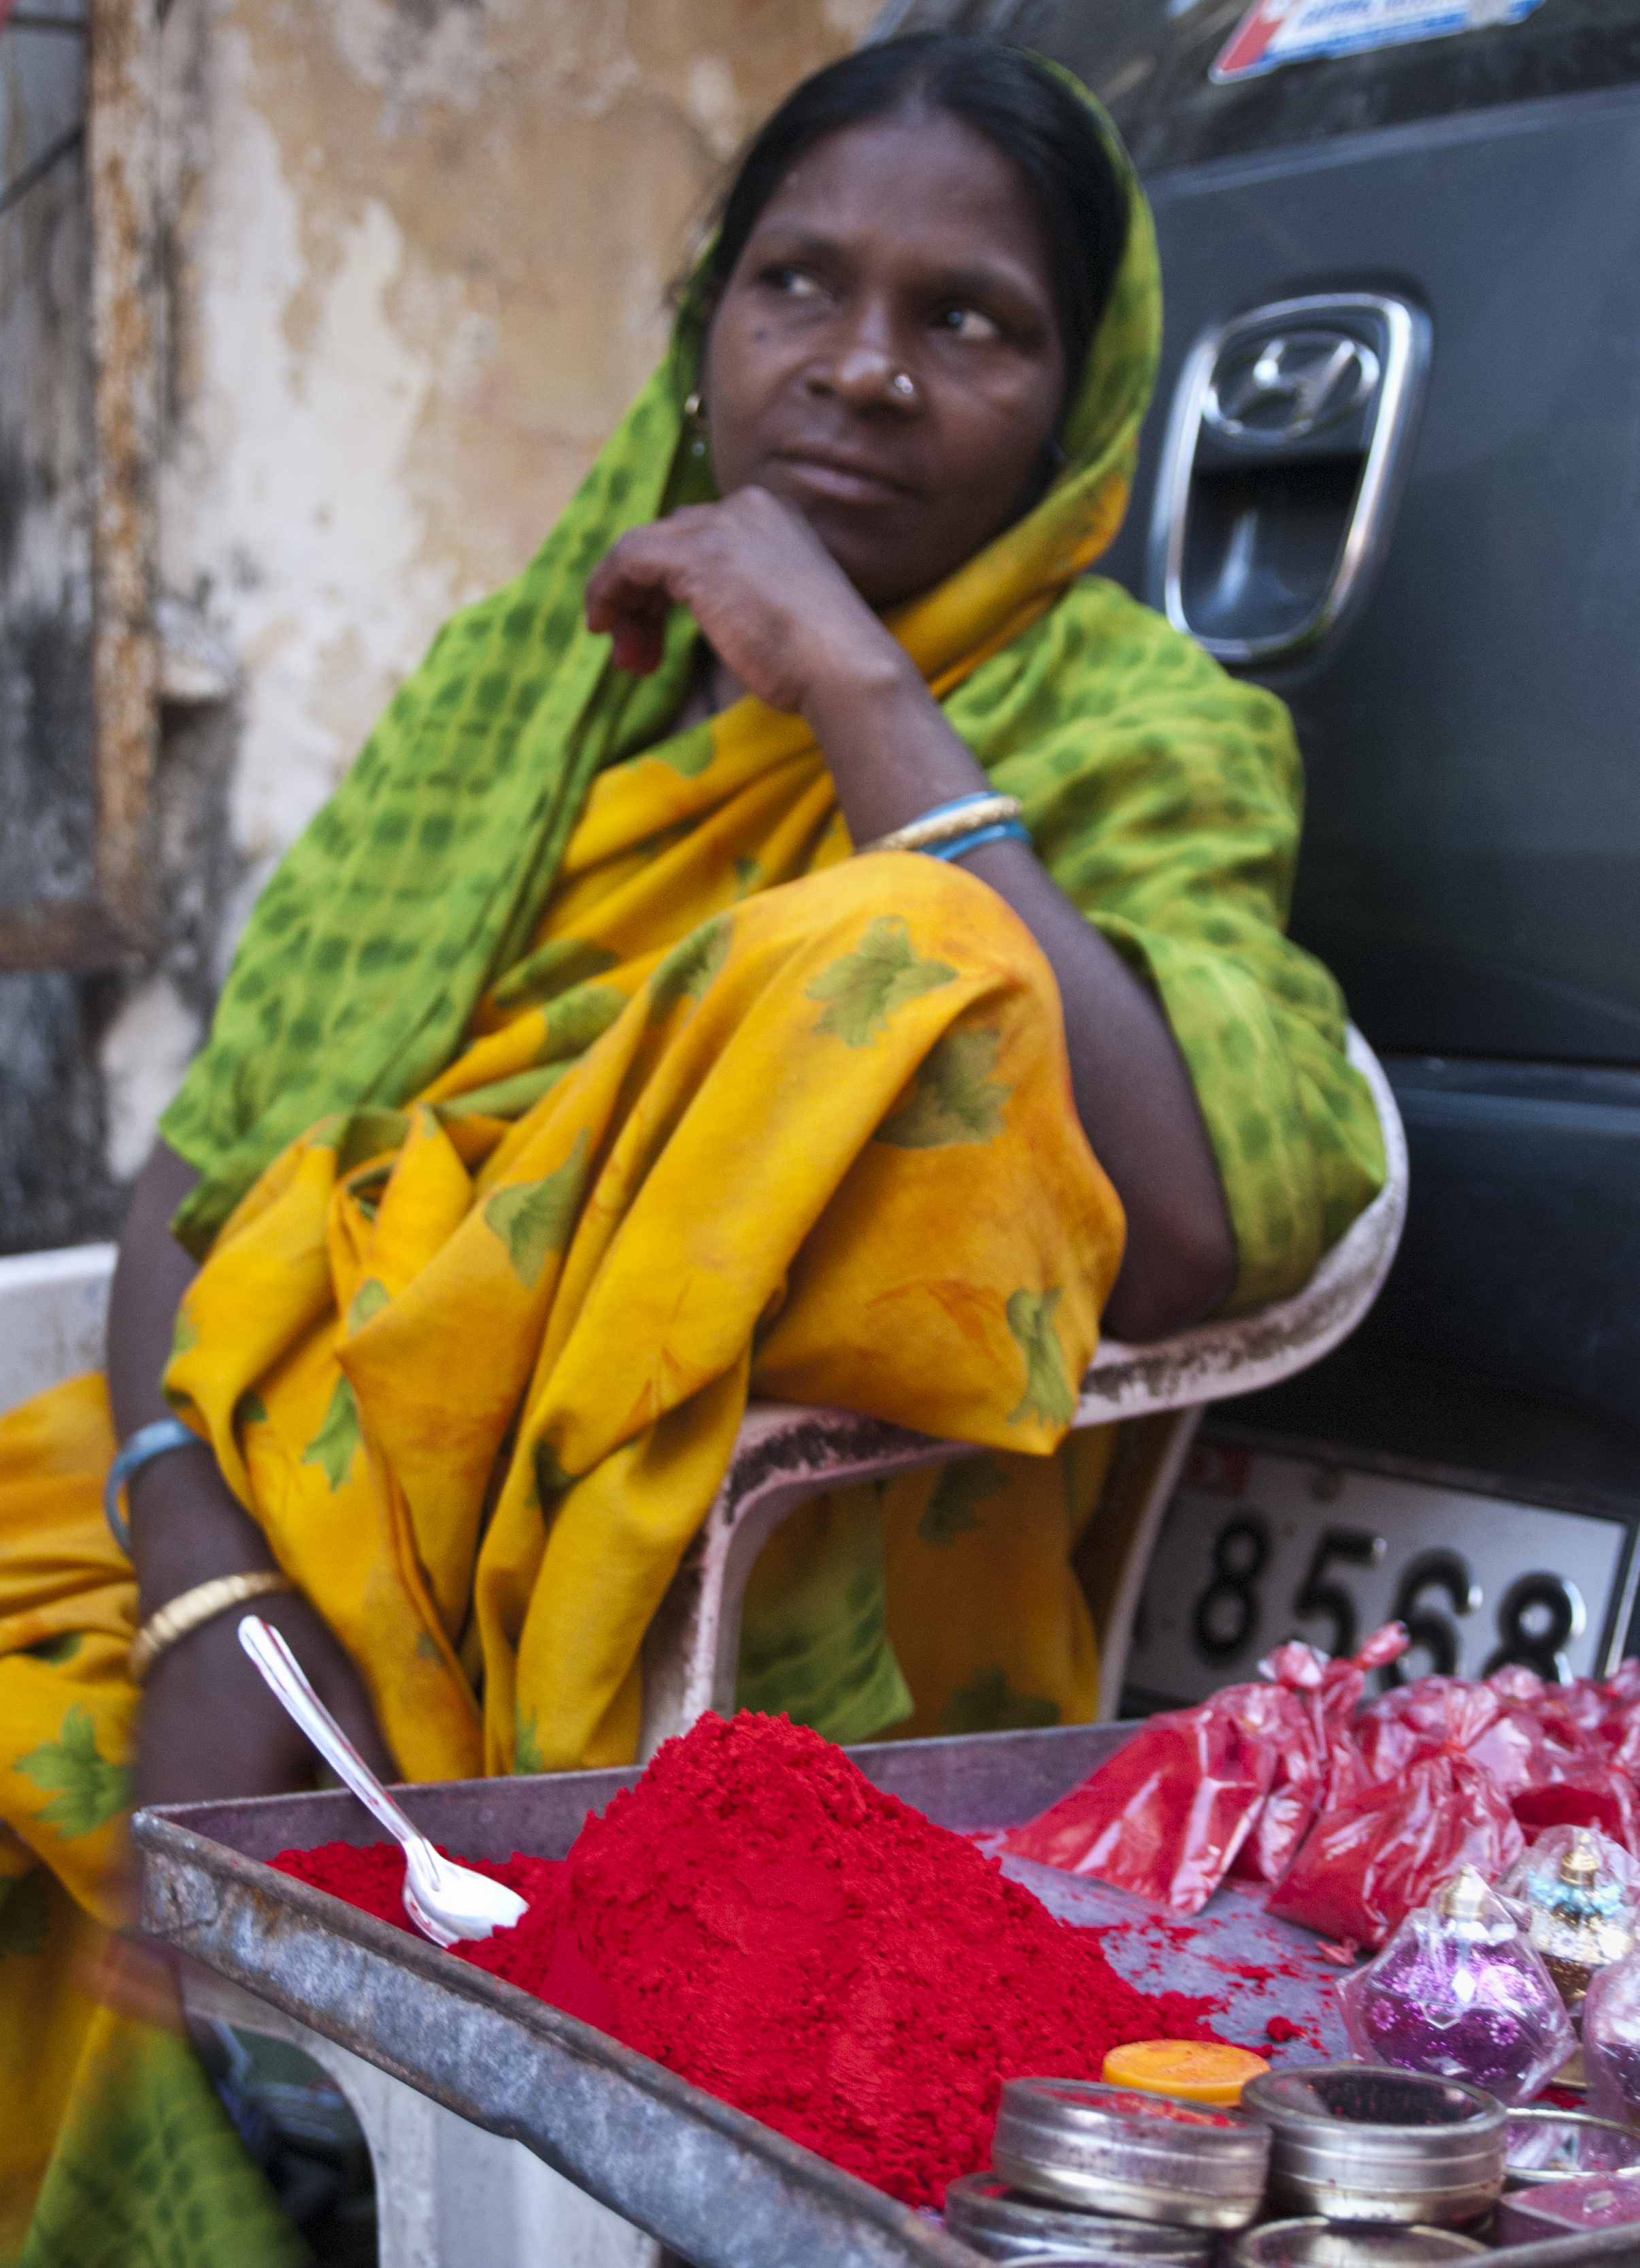 A woman sells vermillion powder. The powder is applied between the eyebrows to signify the third eye and the sixth chakra.